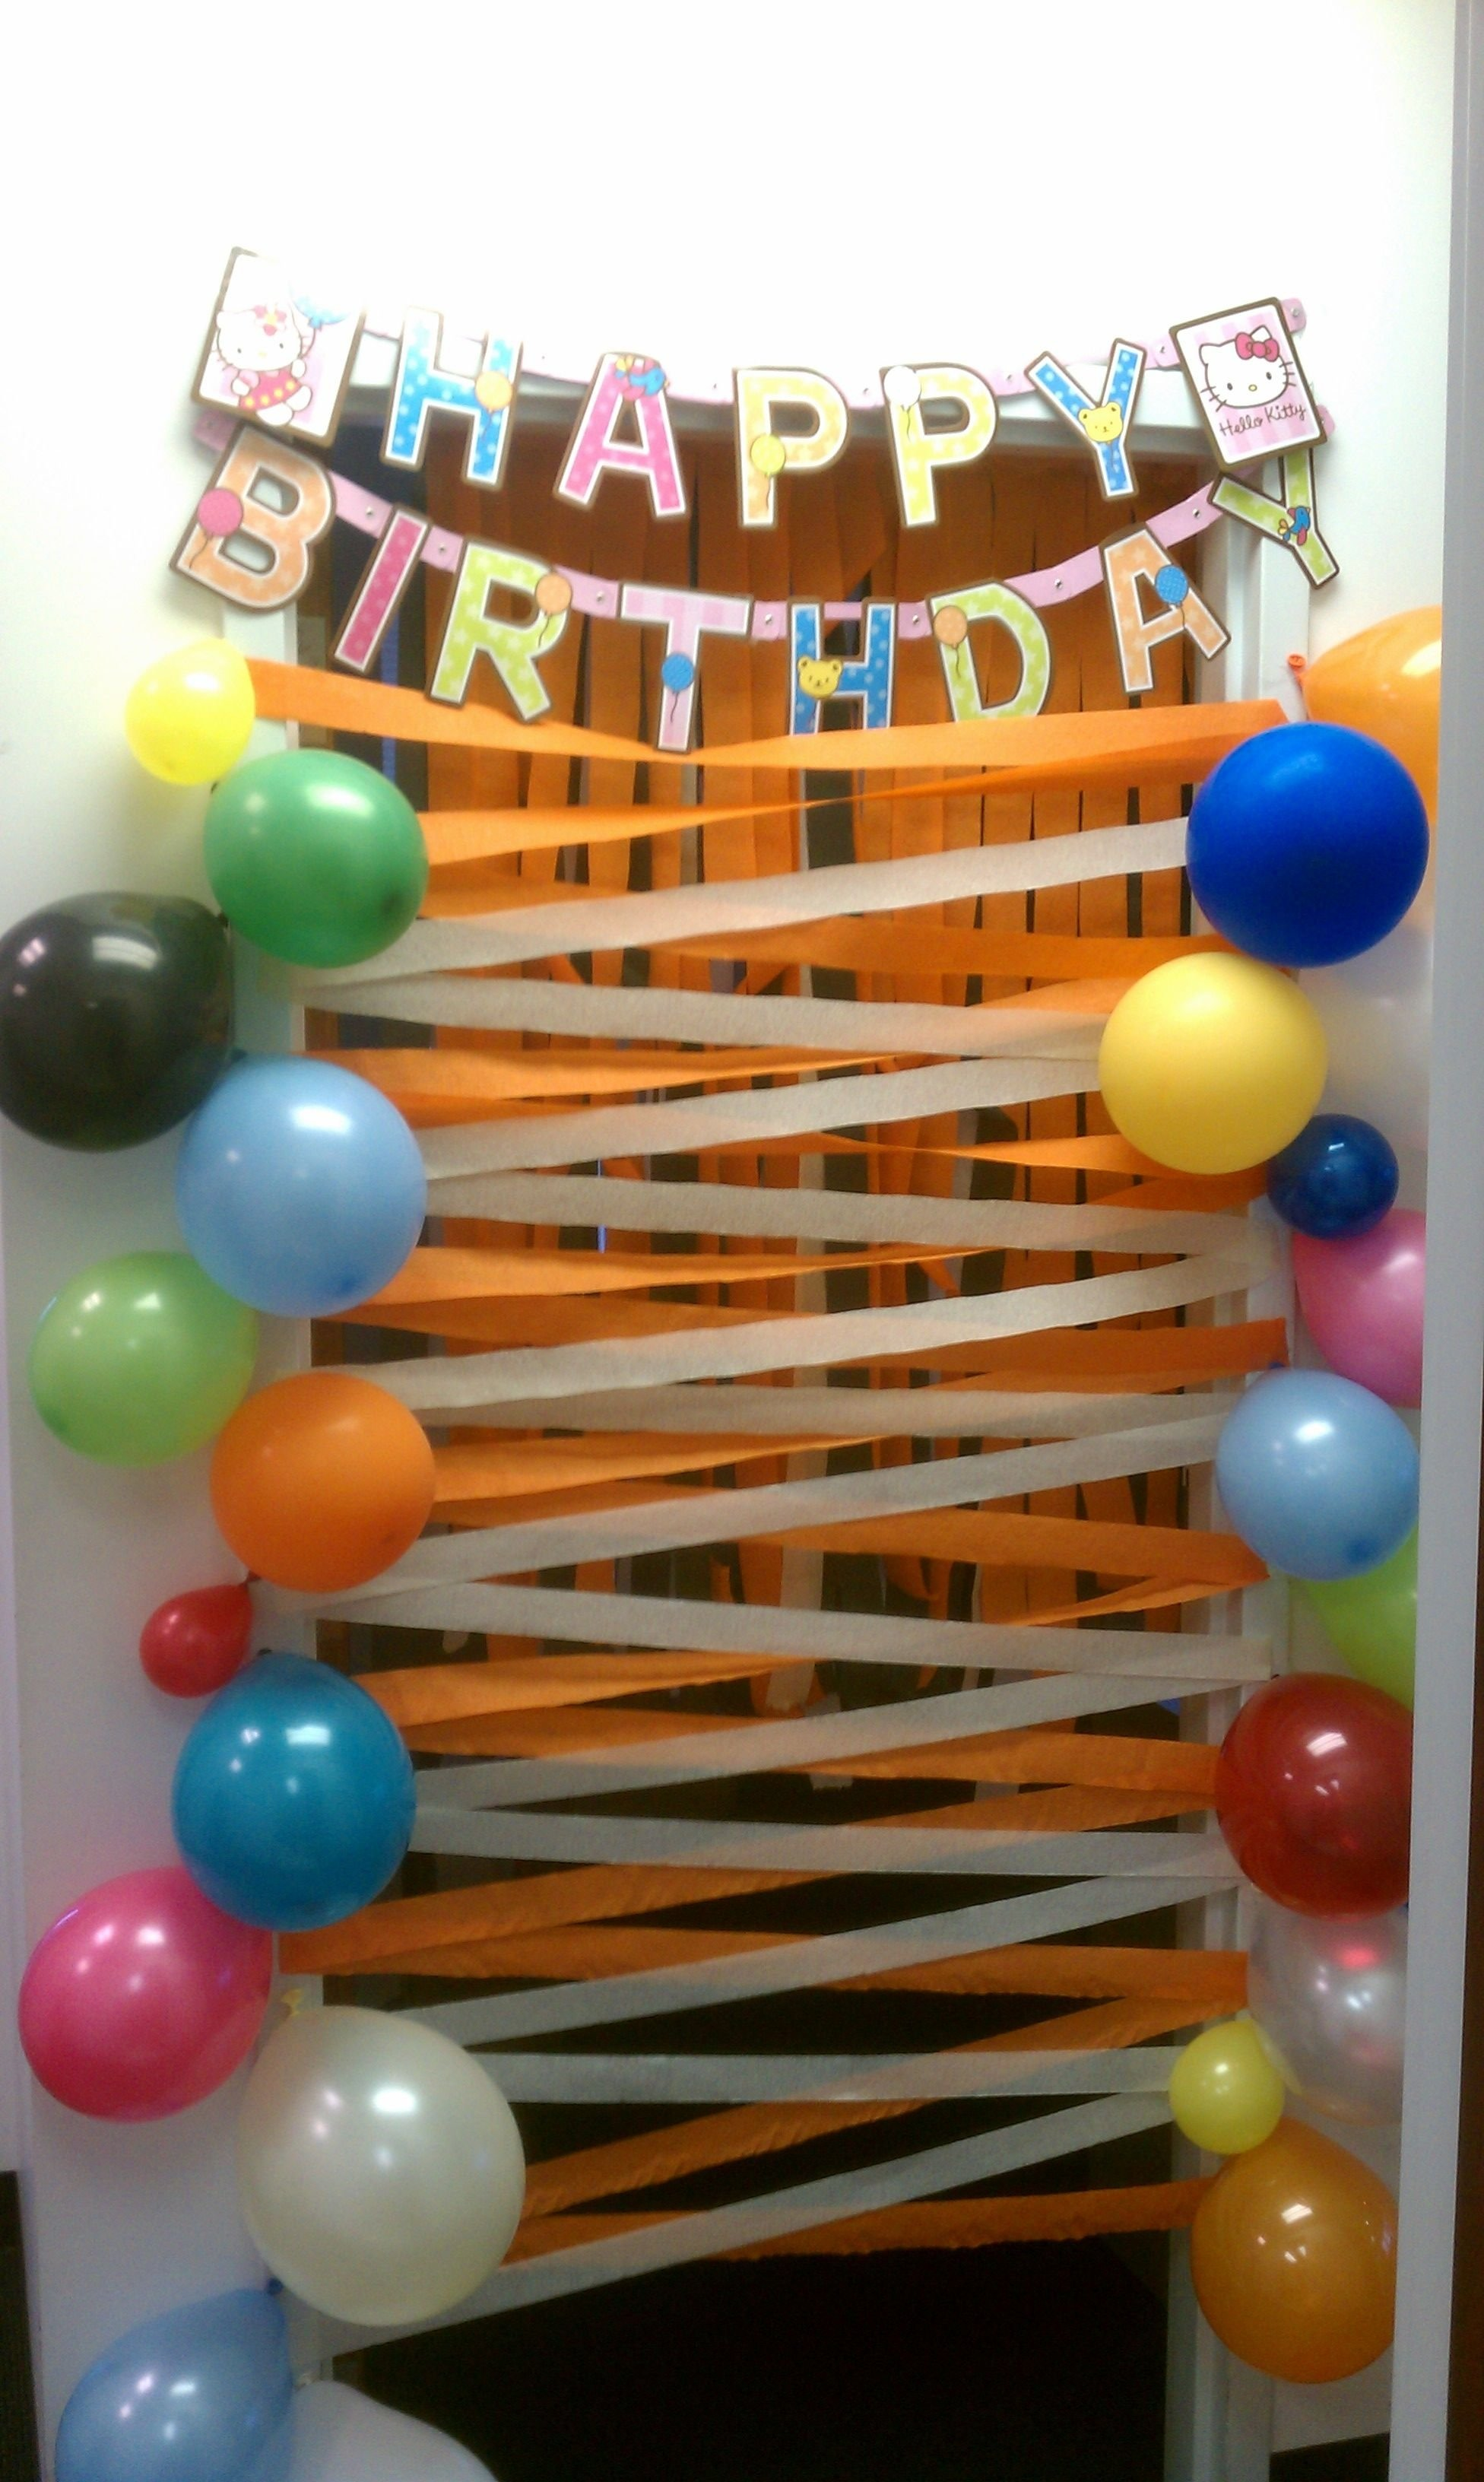 10 Spectacular Ideas For A Surprise Birthday Party a nice birthday surprise for my coworker birthday door decorations 3 2020